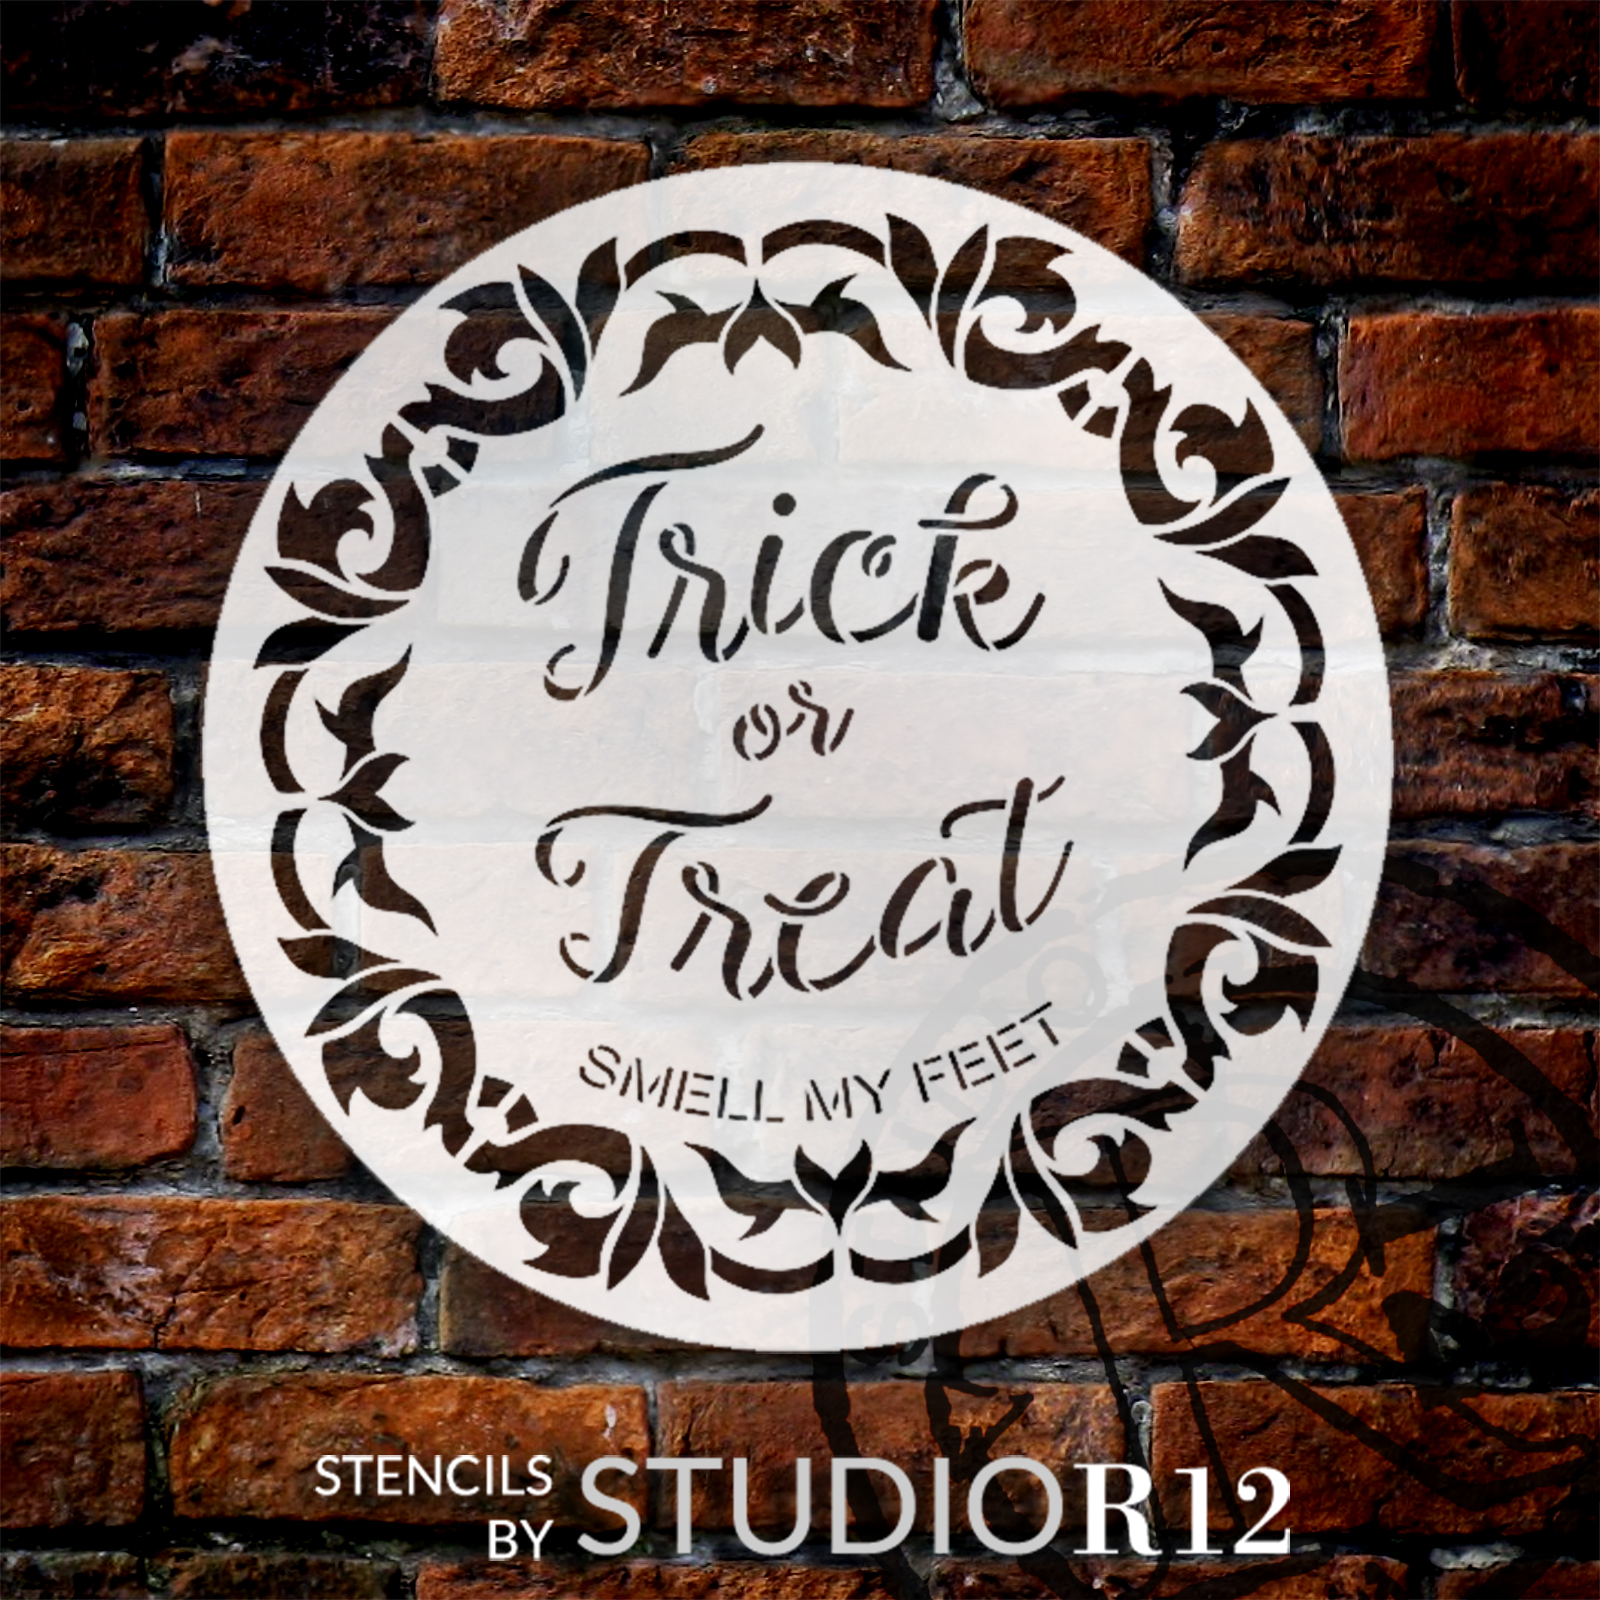 Trick or Treat Smell My Feet Round Stencil by StudioR12 | Craft DIY Fall Bat Wreath Home Decor | Paint Circular Halloween Wood Sign | Select Size